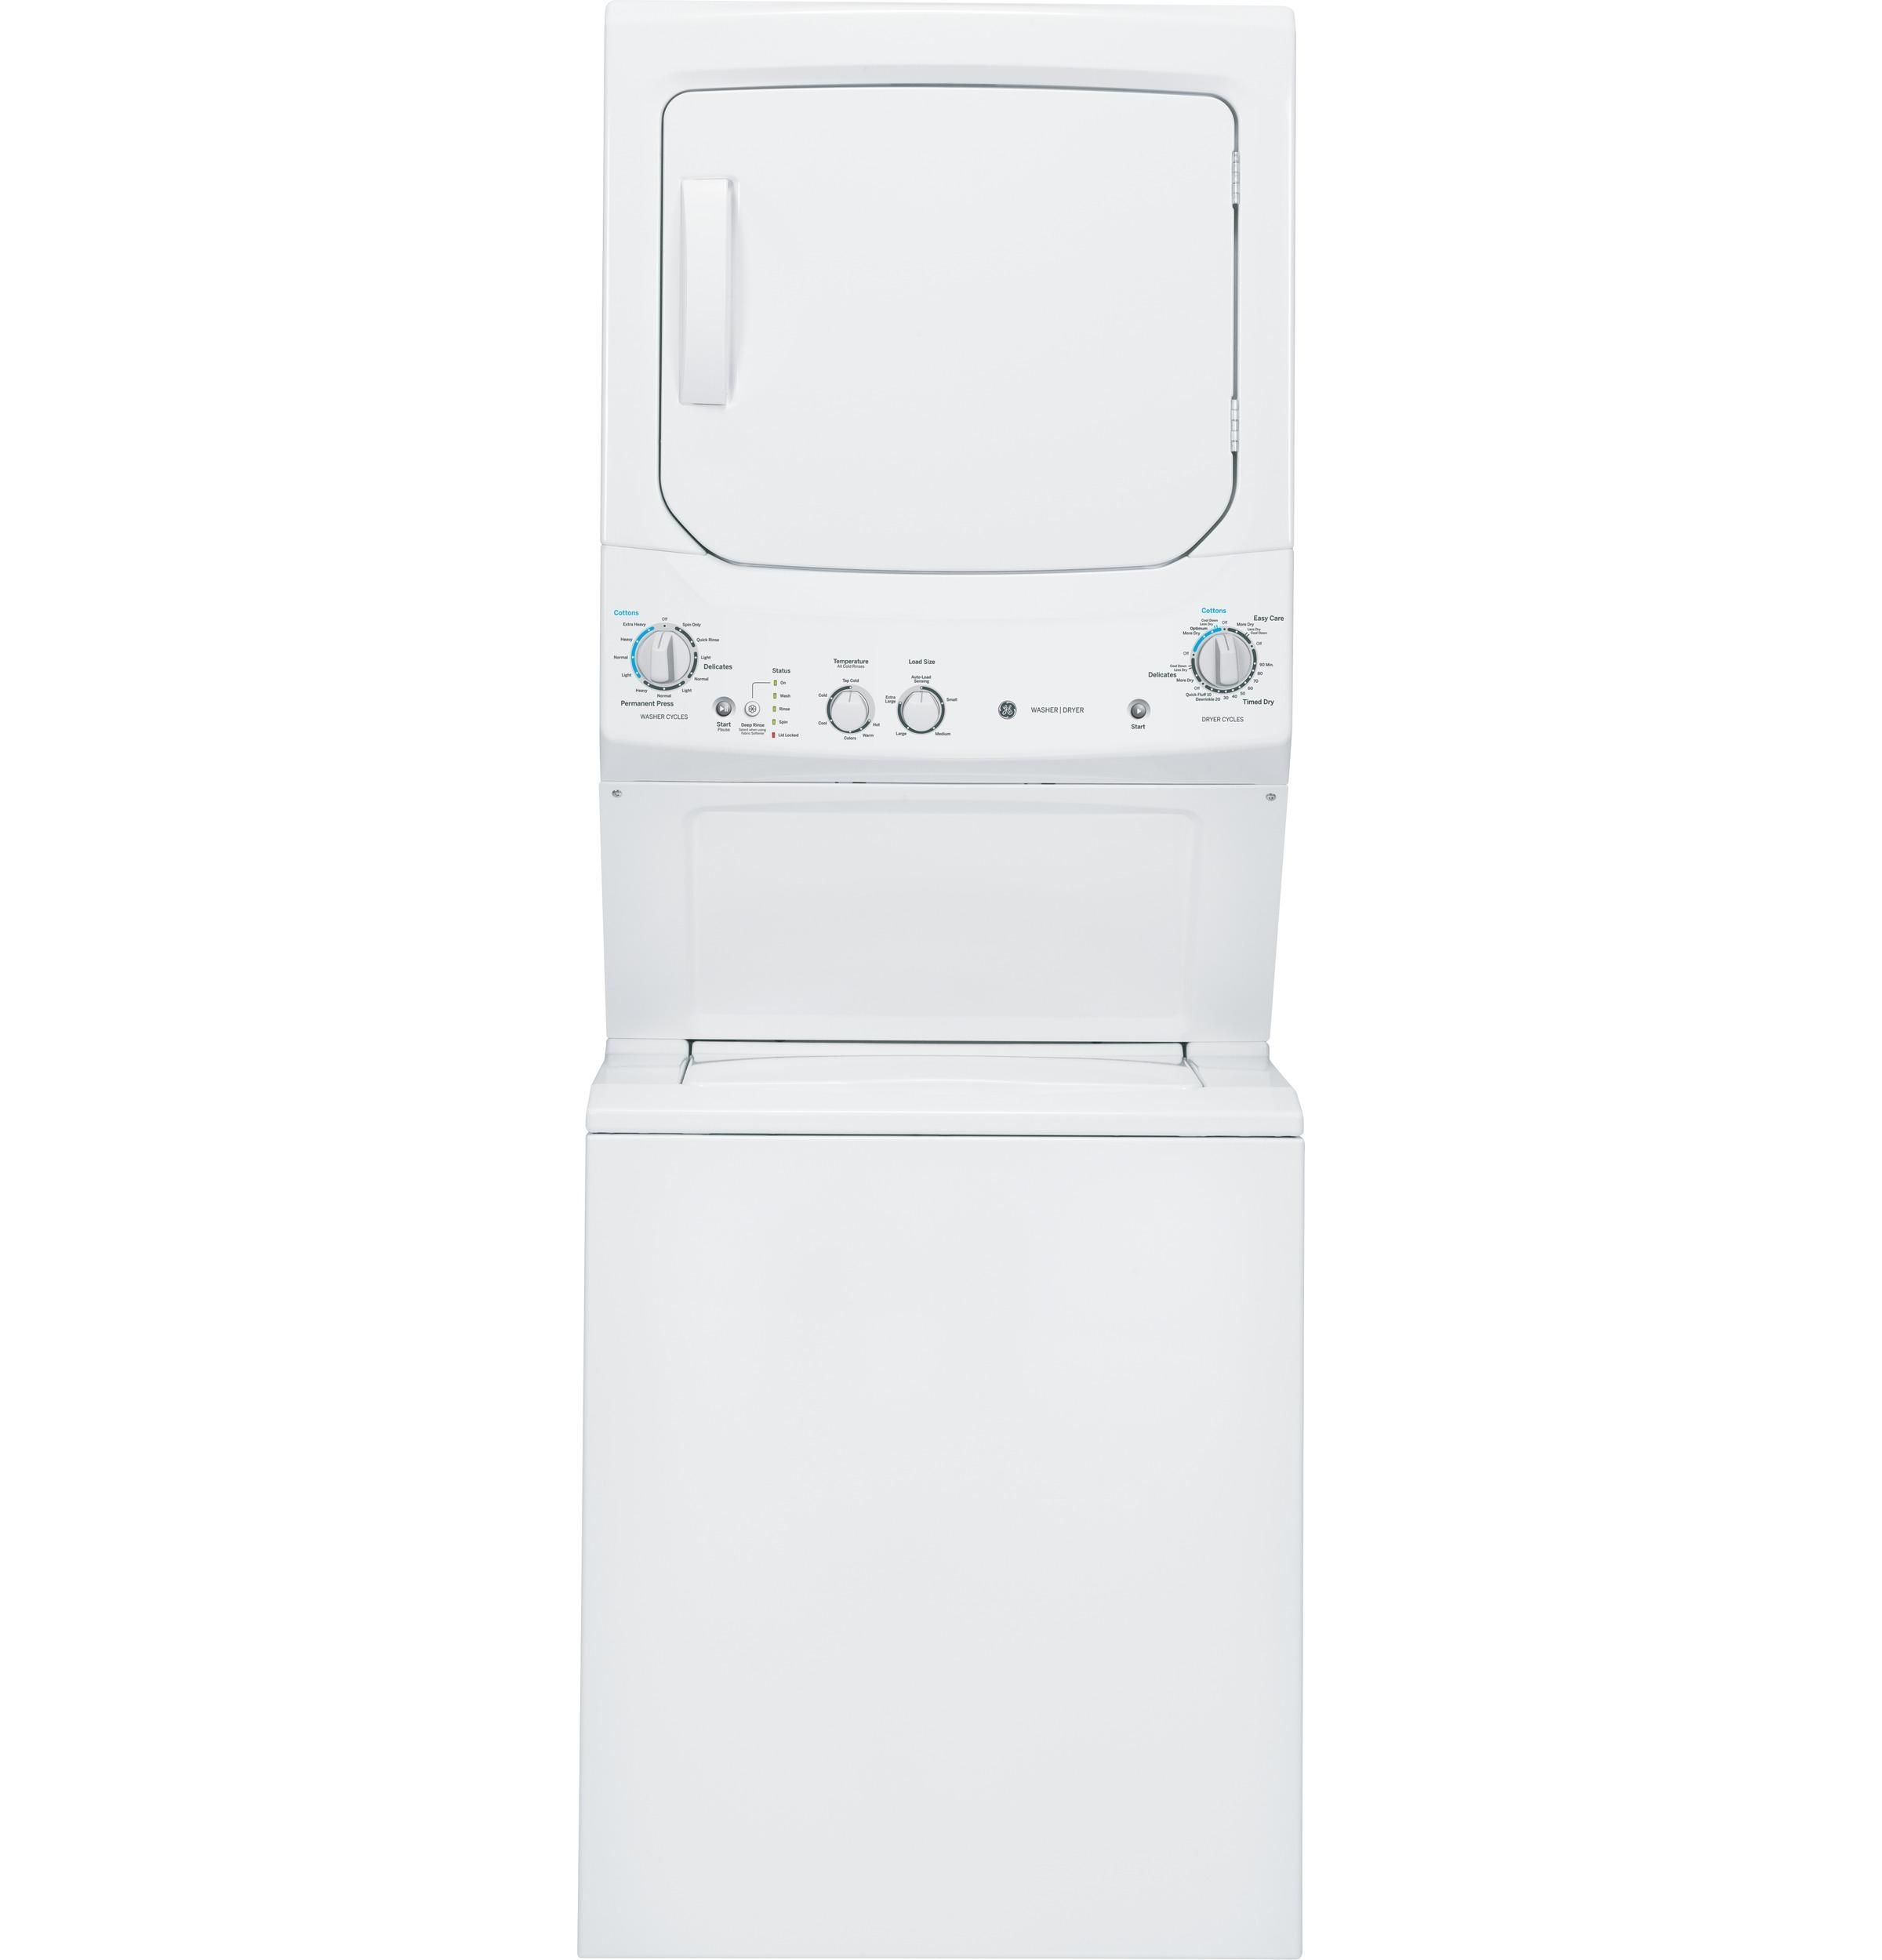 GE Unitized Spacemaker(R) 3.2 DOE cu. ft. Washer and 5.9 cu. ft. Electric Dryer